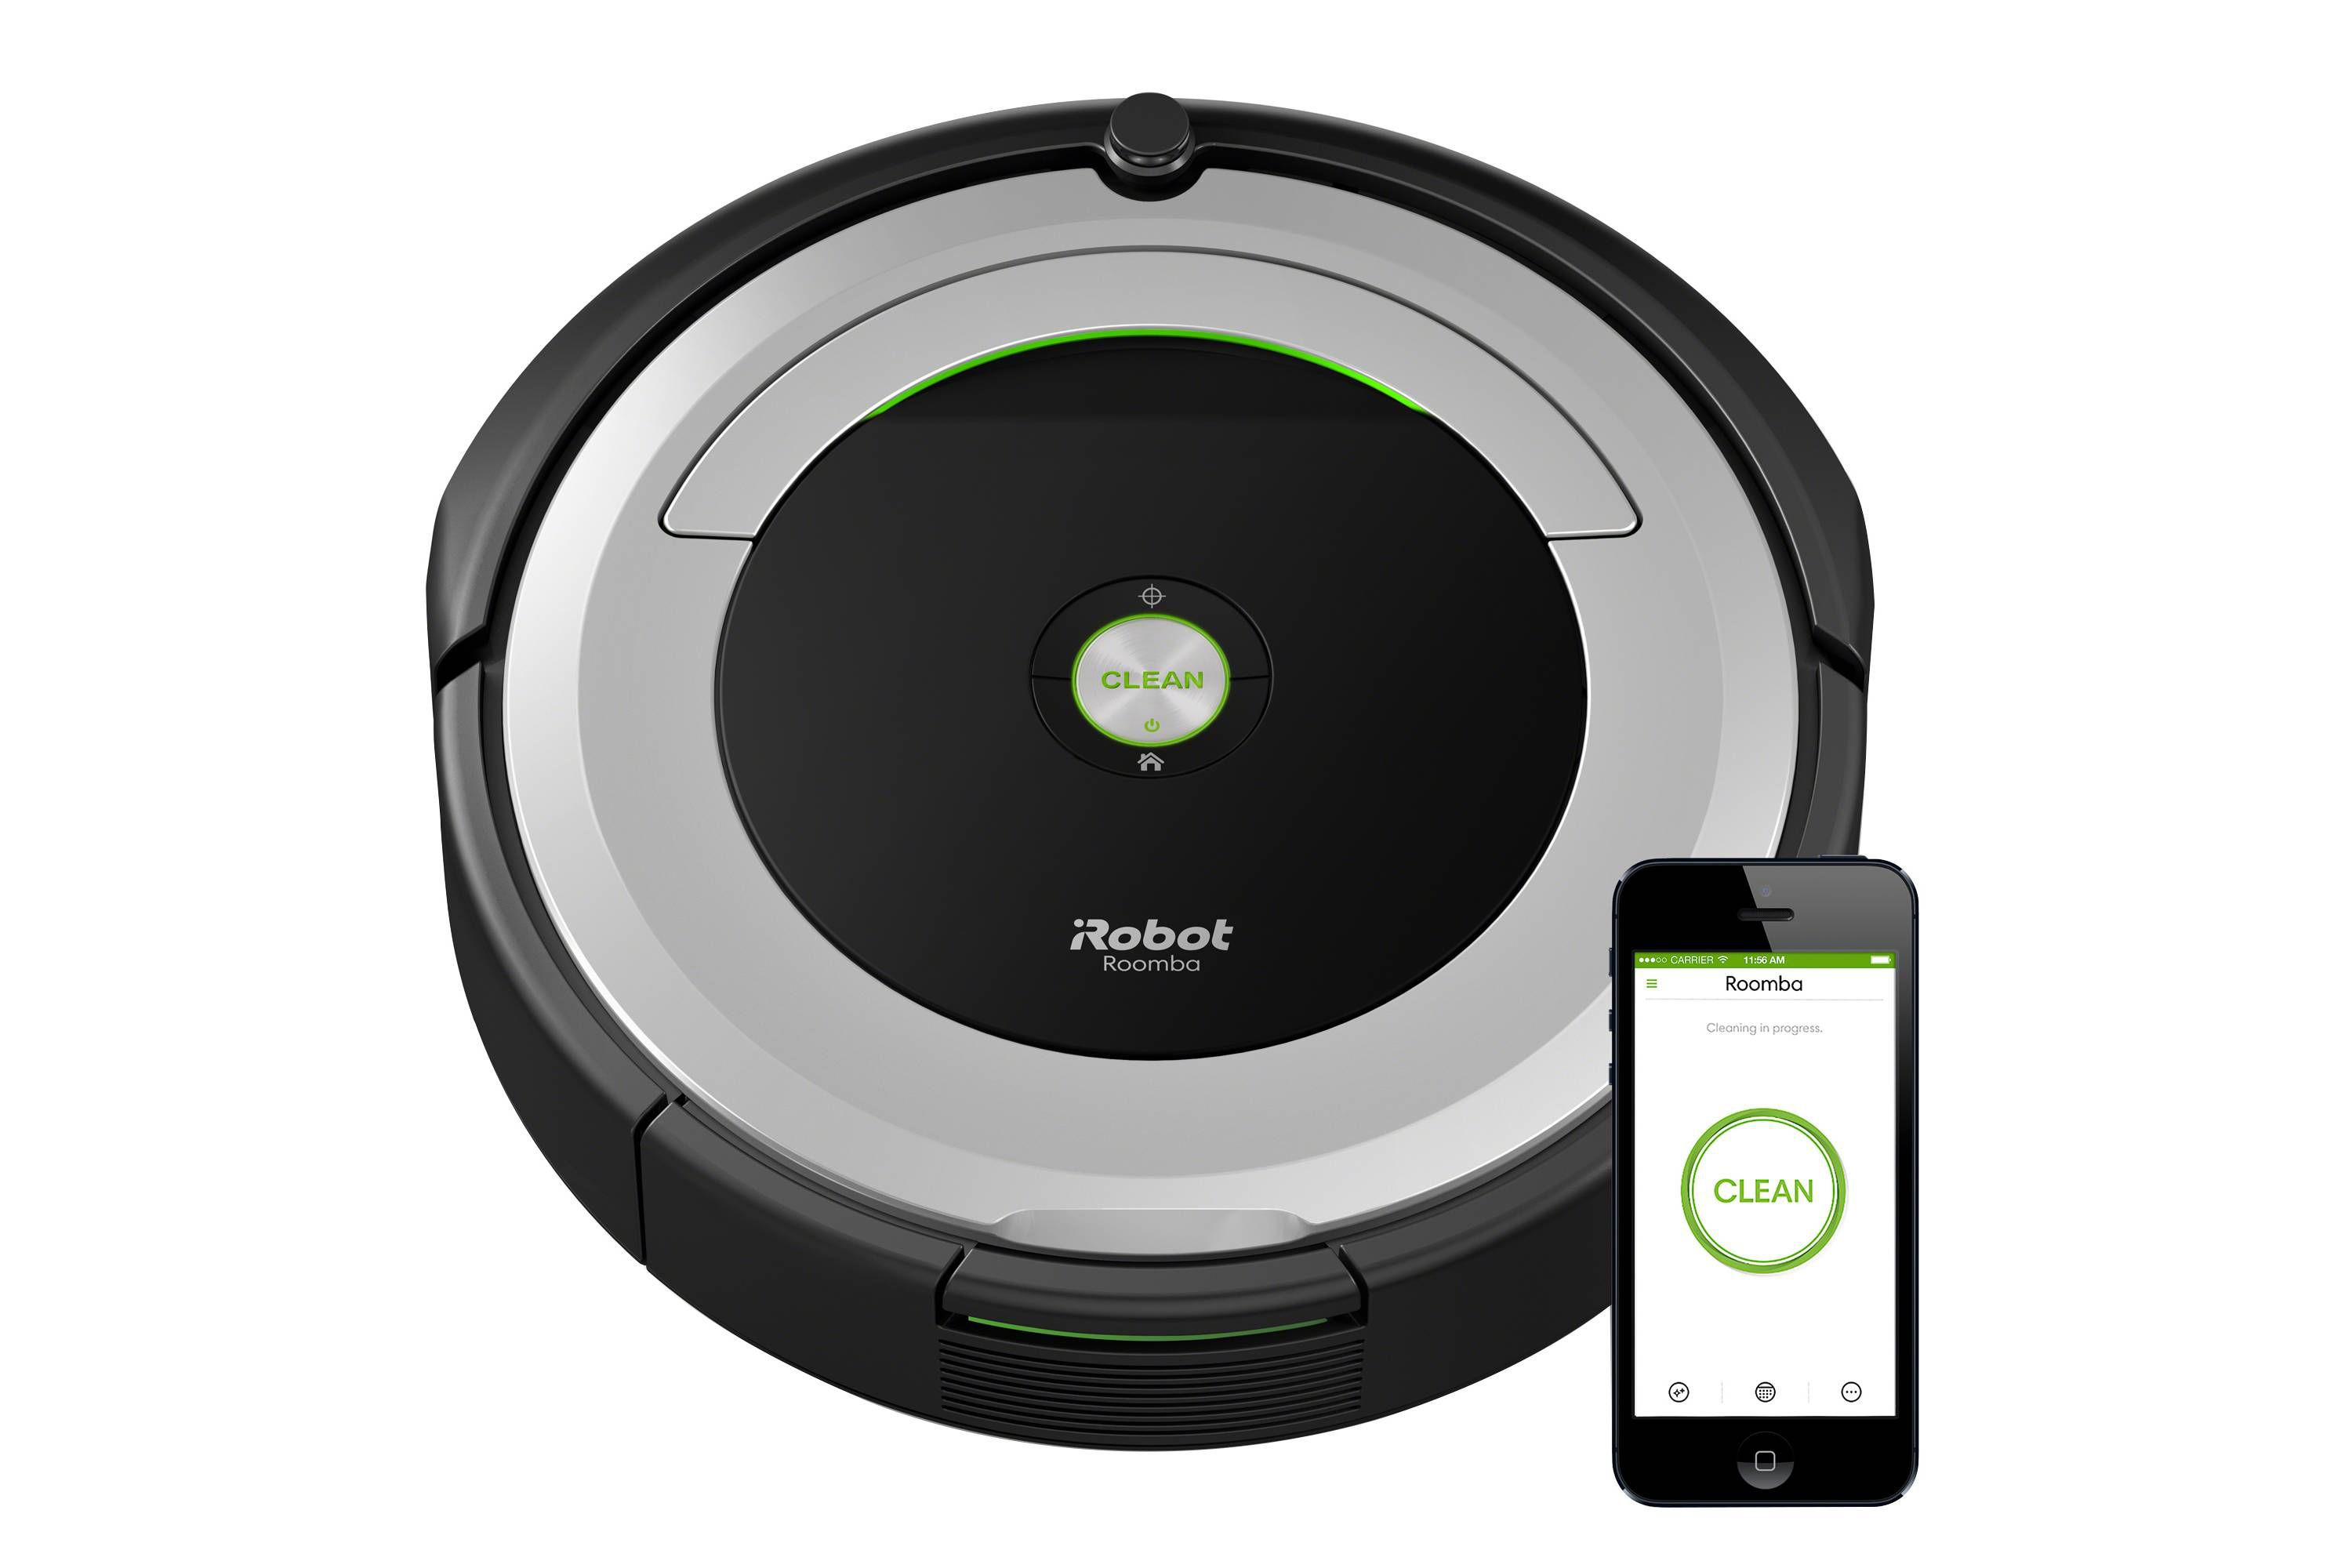 hardwood floor cleaning robot reviews of the 10 best vacuum cleaners to buy in 2018 with regard to 52360762 5a73686d04d1cf0036a08cb7